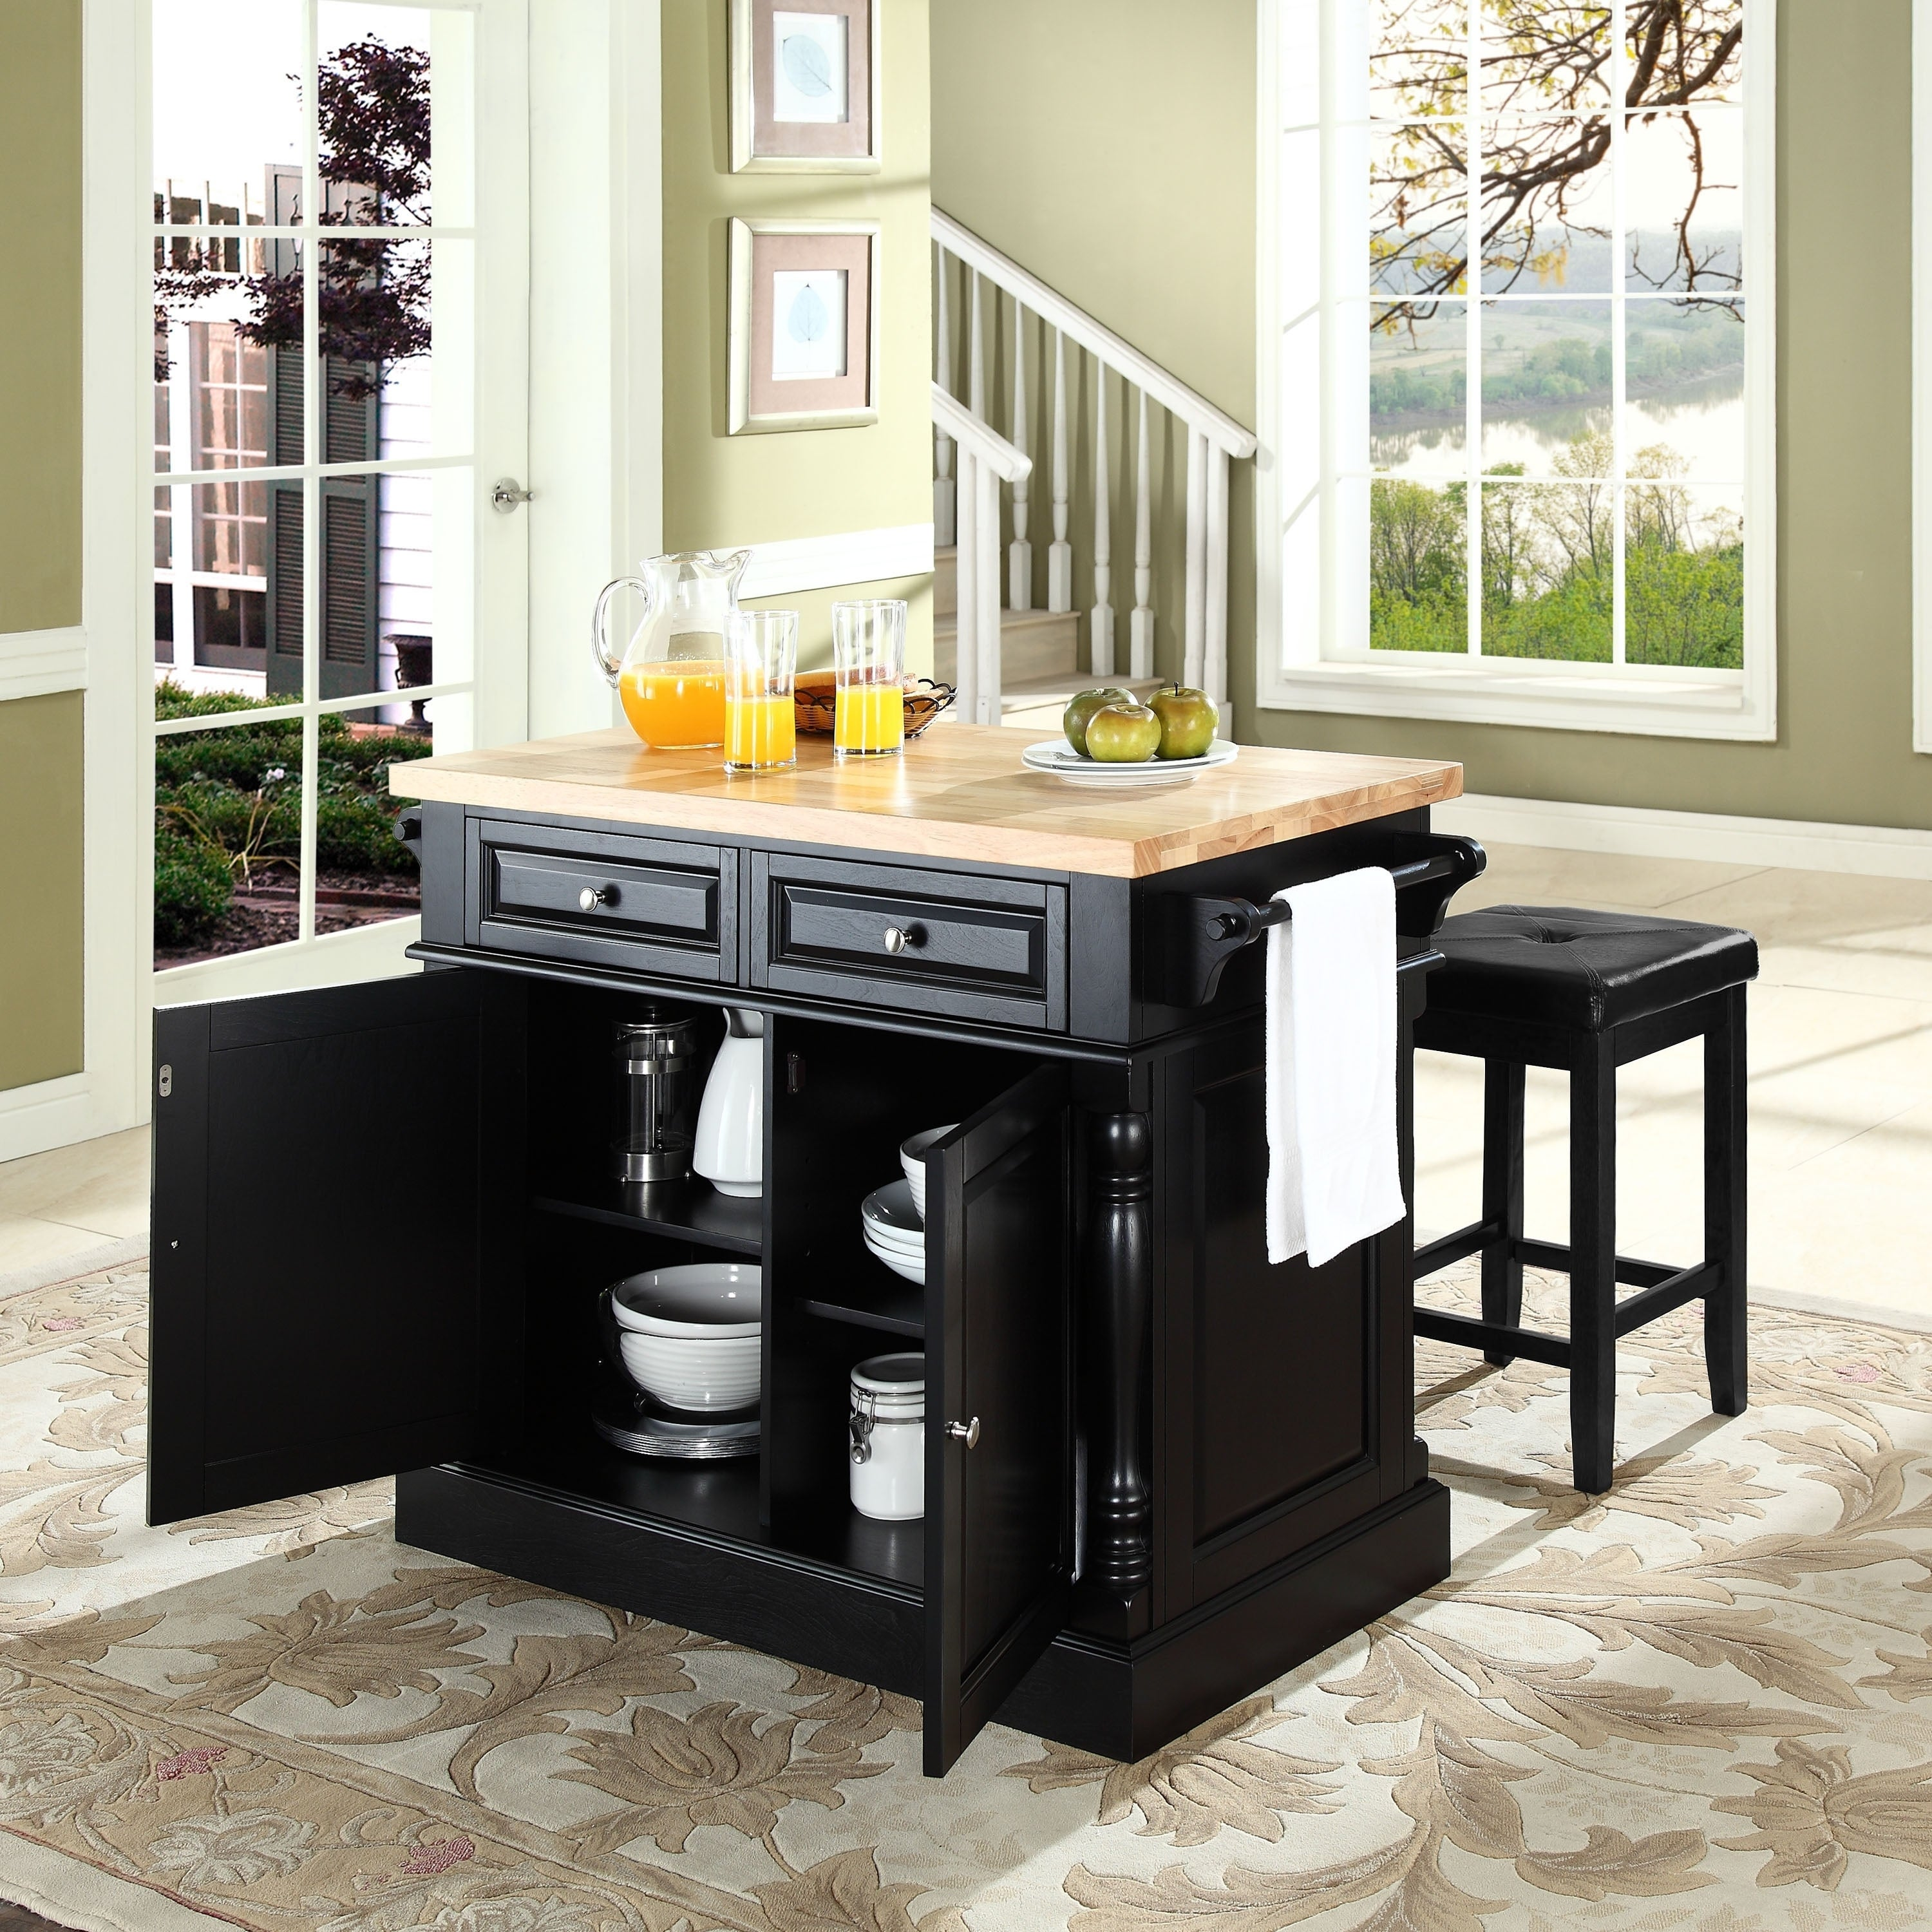 Oxford Butcher Block Top Kitchen Island In Black Finish With Stools 47 75 W X 23 D X 35 75 H Overstock 27193000